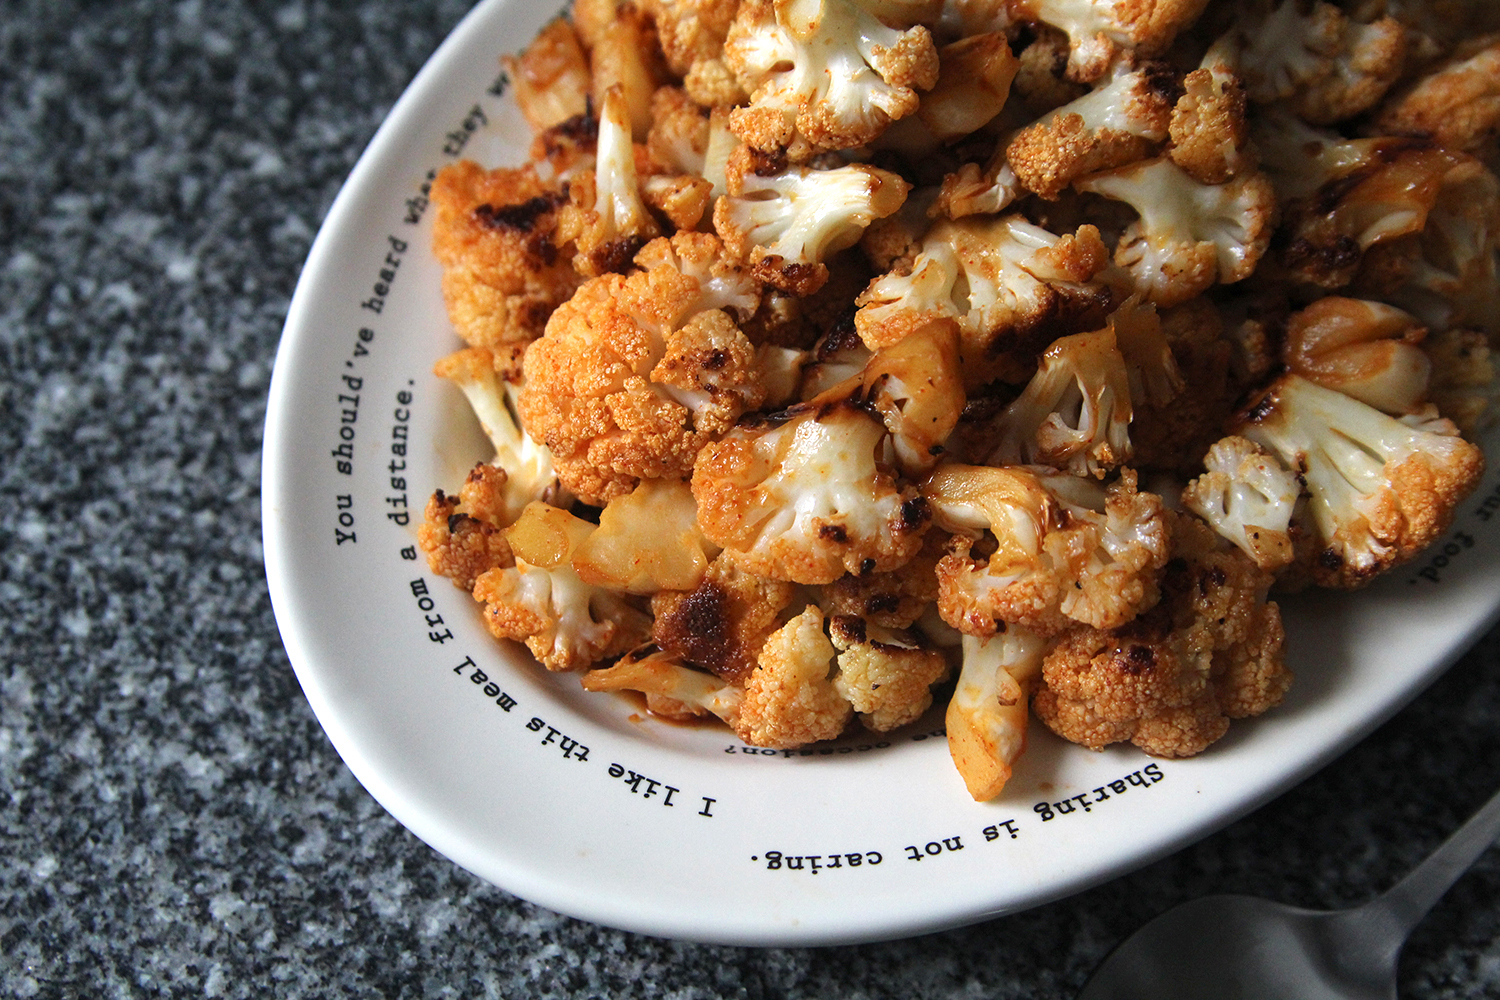 Spicy Roasted Cauliflower with Gochujang